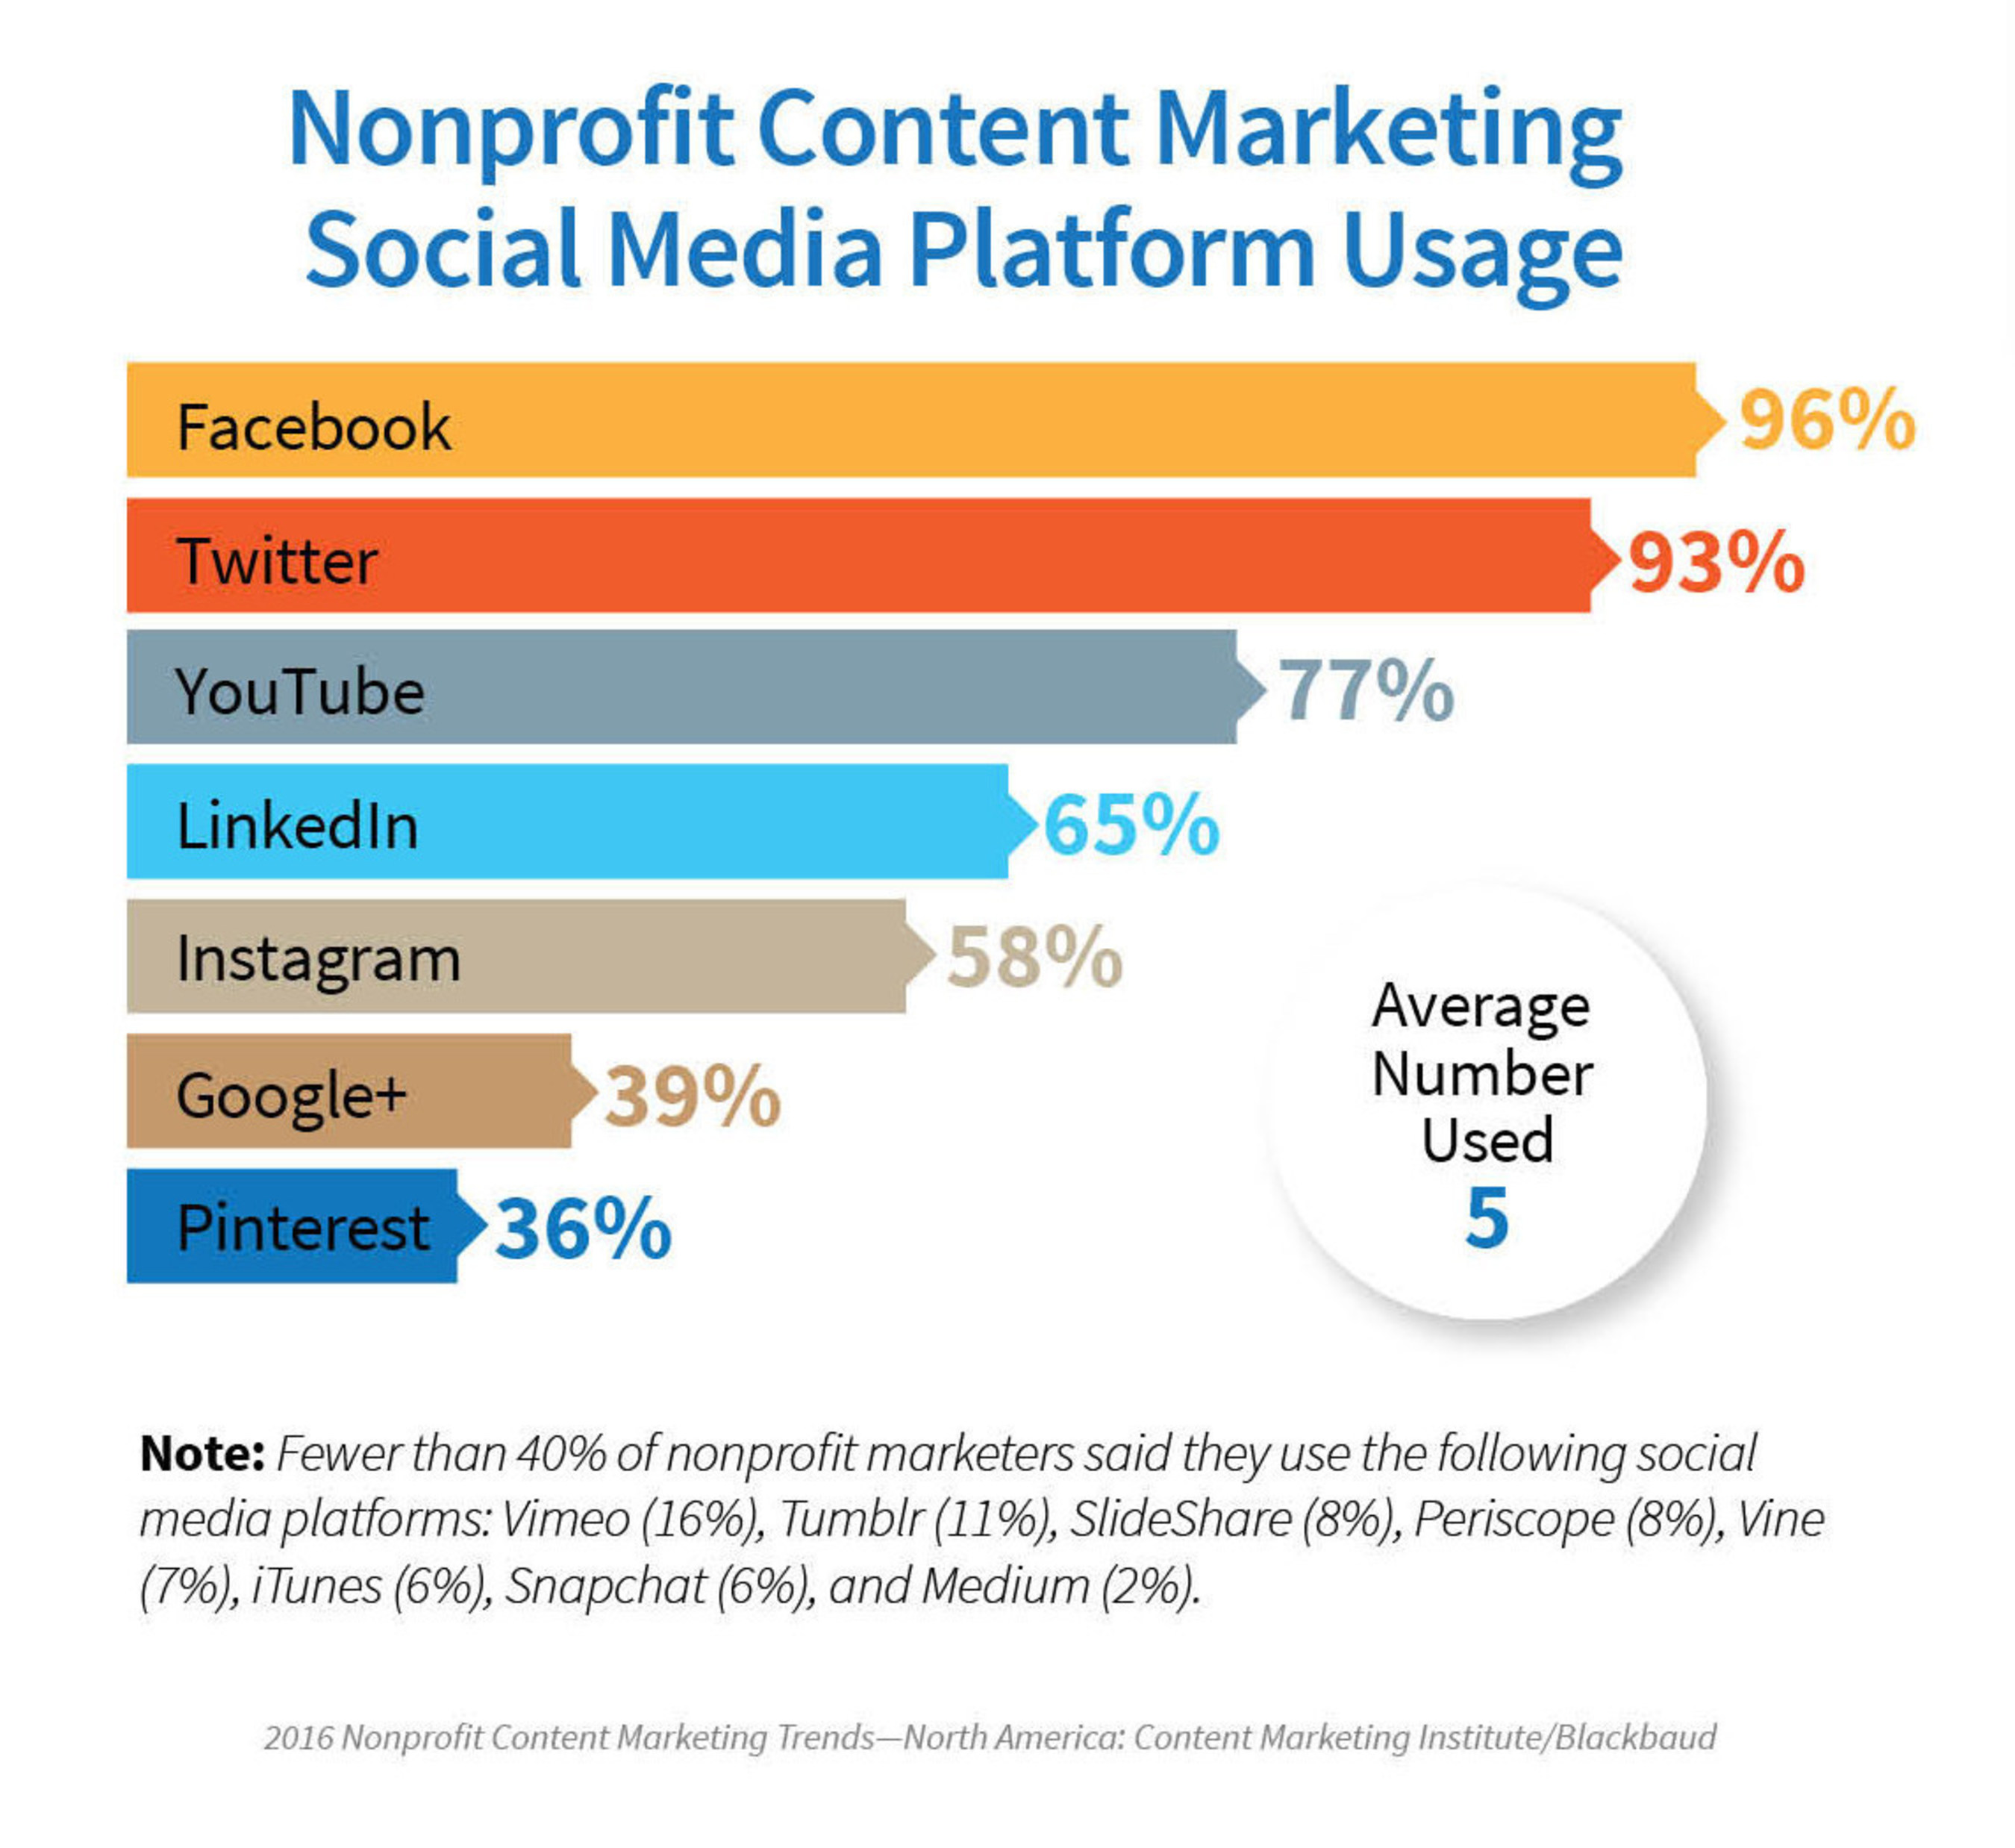 Nonprofit Marketers Getting Savvier with Facebook for Content Marketing